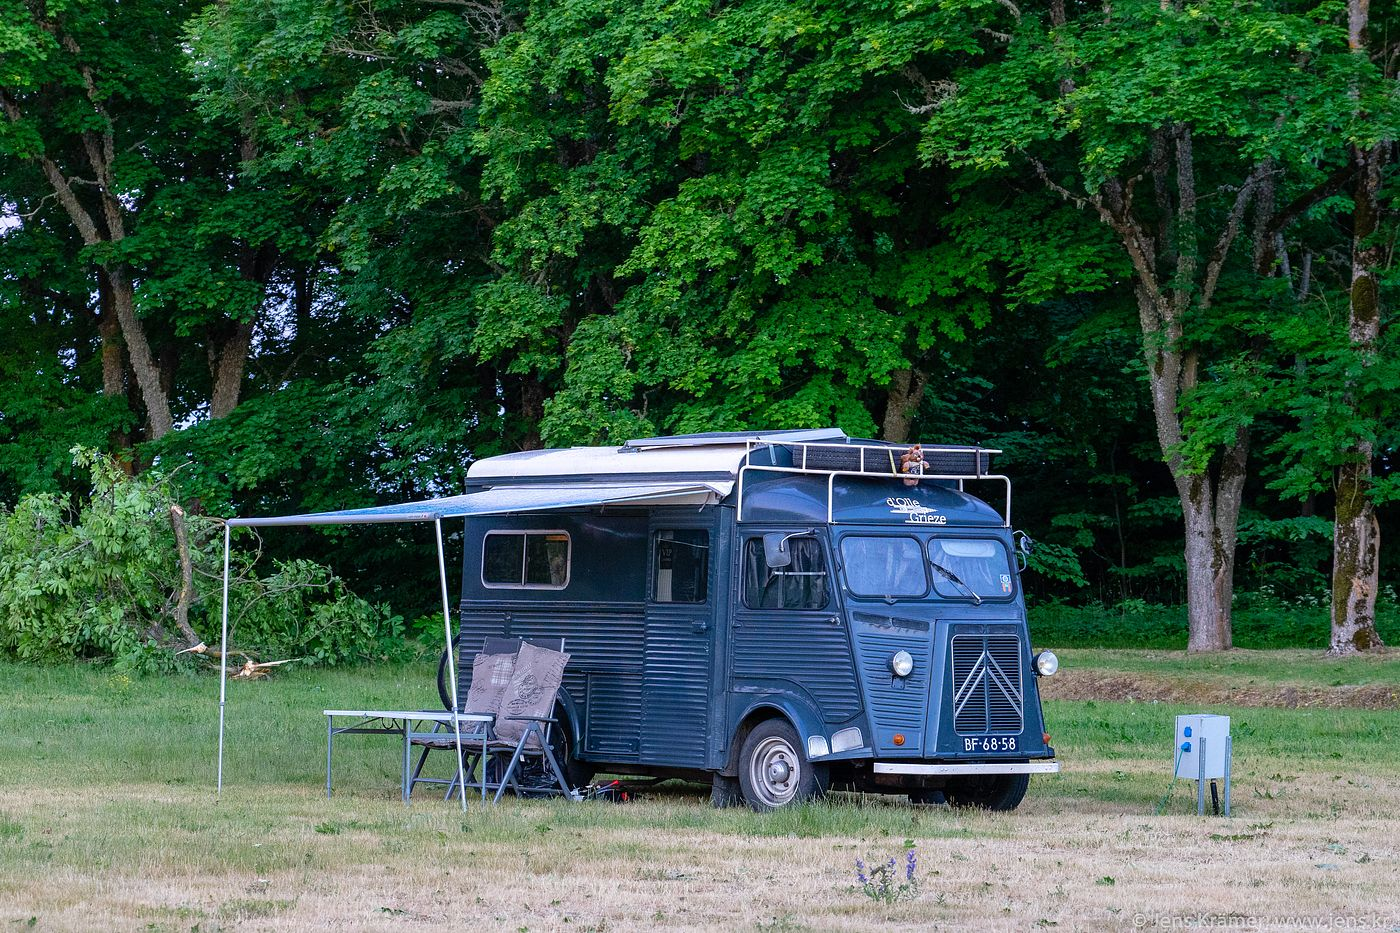 French camper van